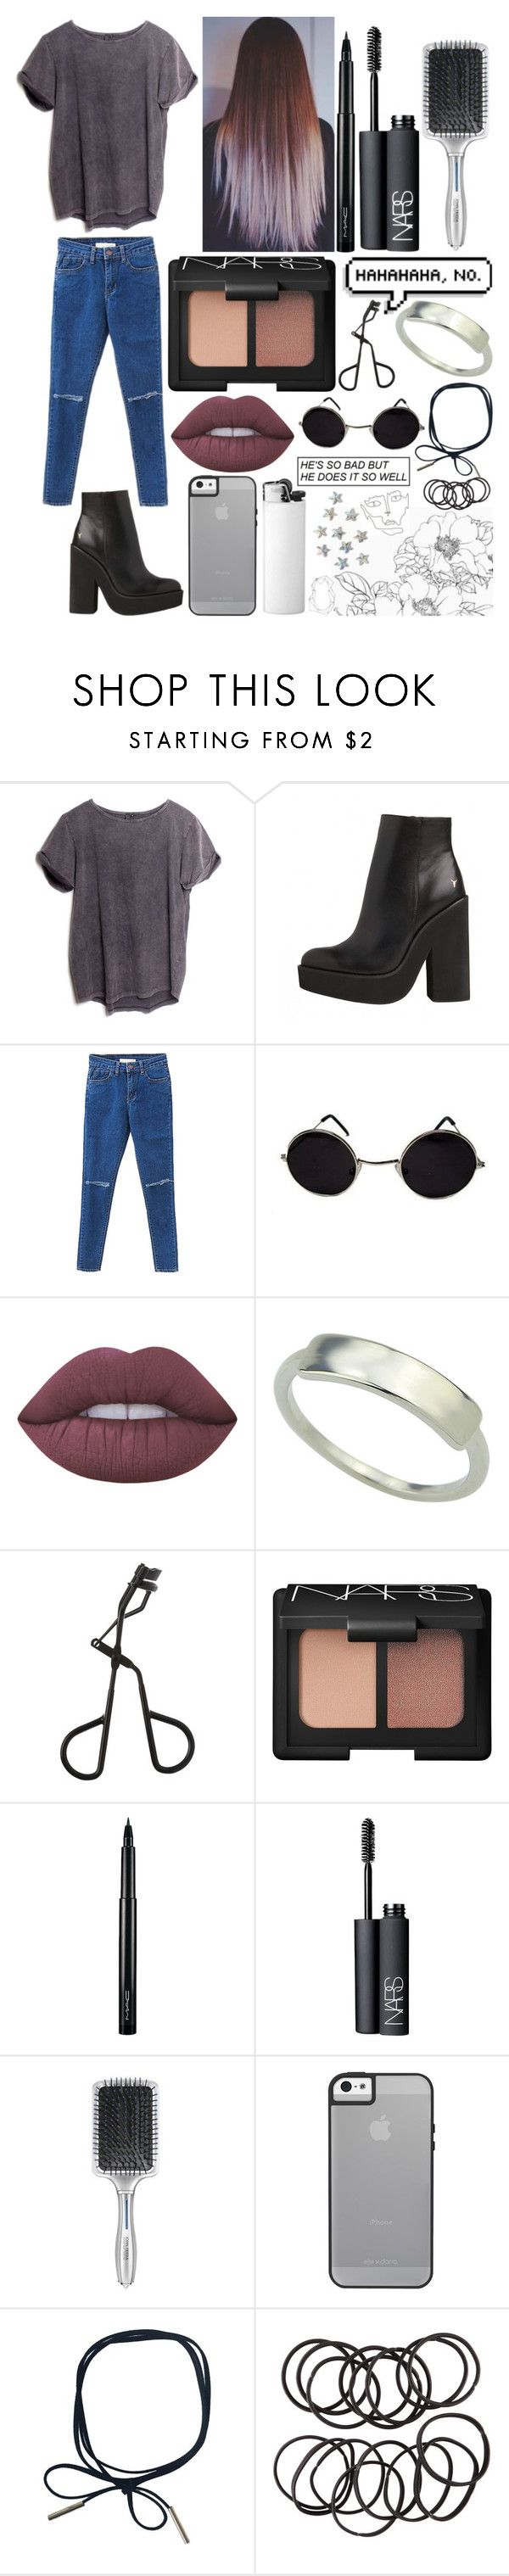 """Untitled #751"" by imcalledcharo ❤ liked on Polyvore featuring ATG, Lime Crime, Topshop, NARS Cosmetics, MAC Cosmetics, John Frieda, H&M and BANCI GIOIELLI"